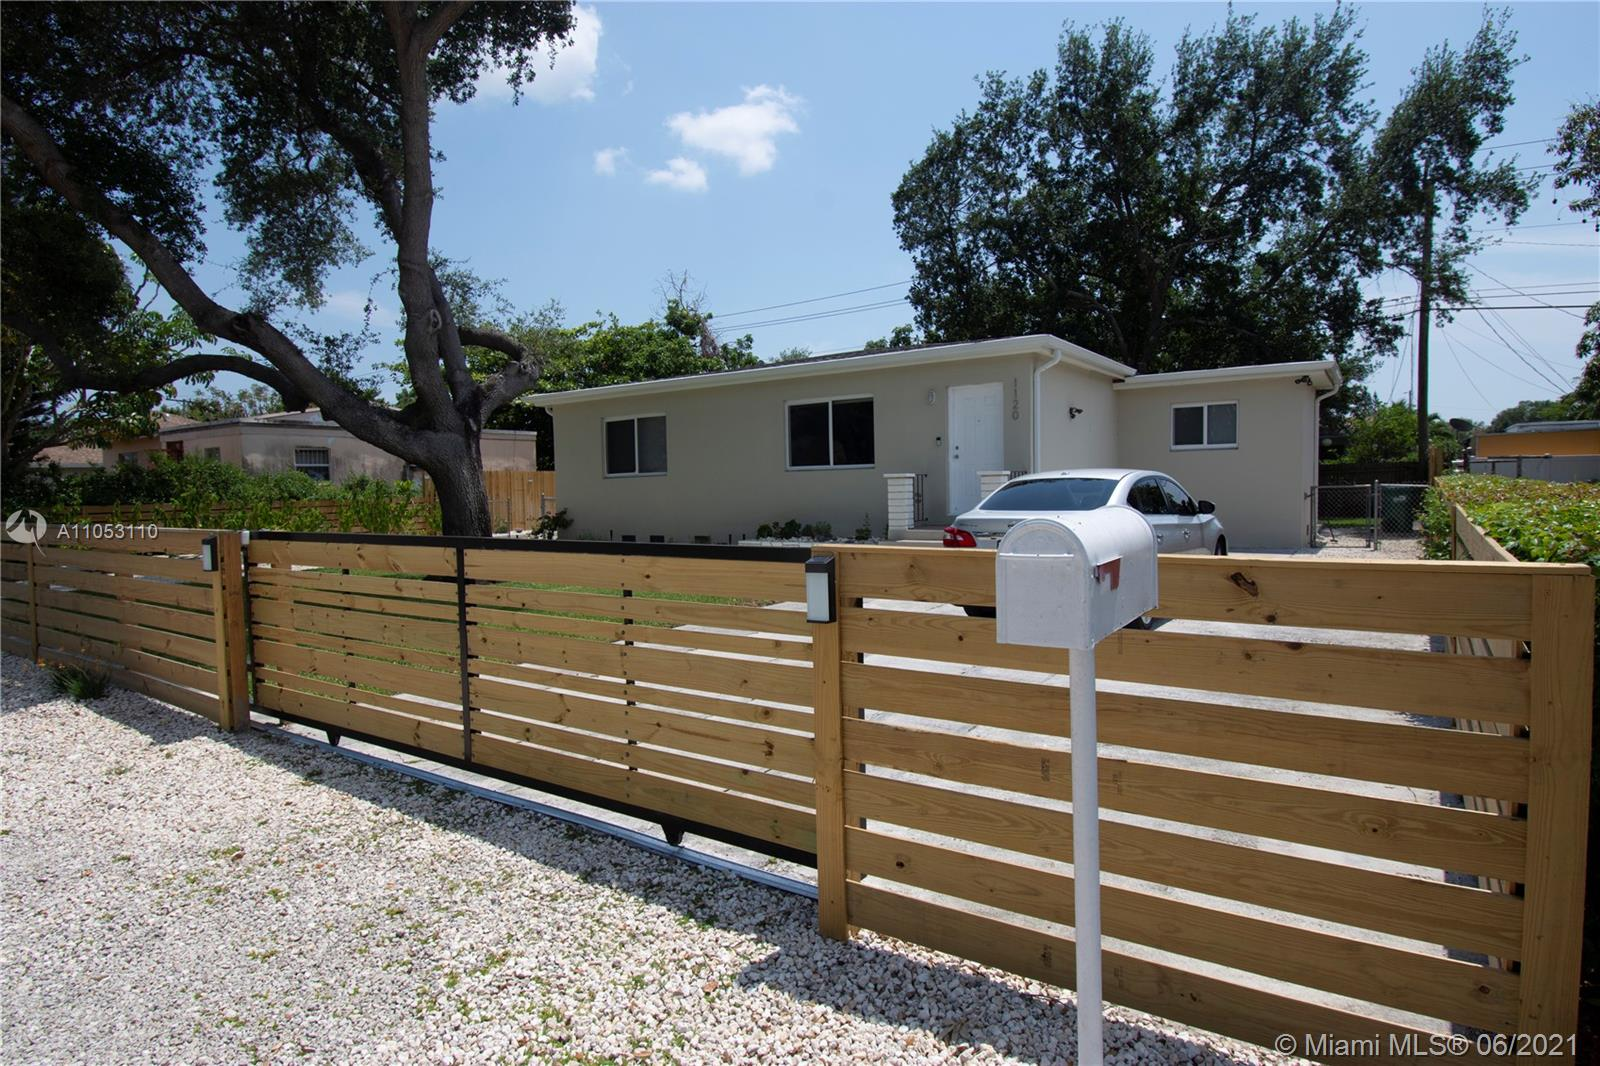 Bisc Gardens - 1120 NW 145th Ter, Miami, FL 33168